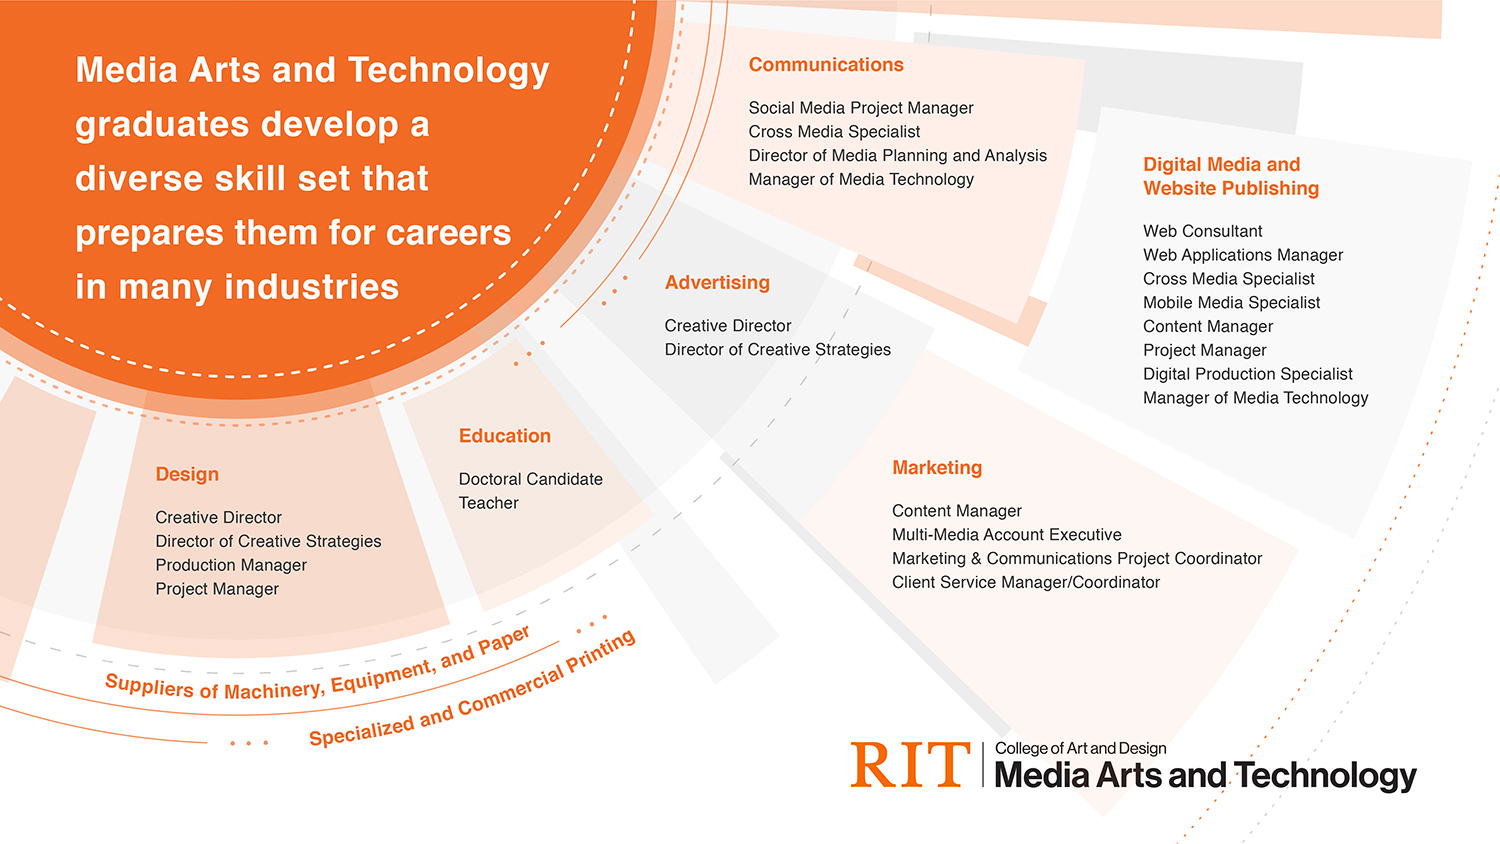 A graphic with industries -- as well as job titles -- graduates of the Media Arts and Technology program work in.